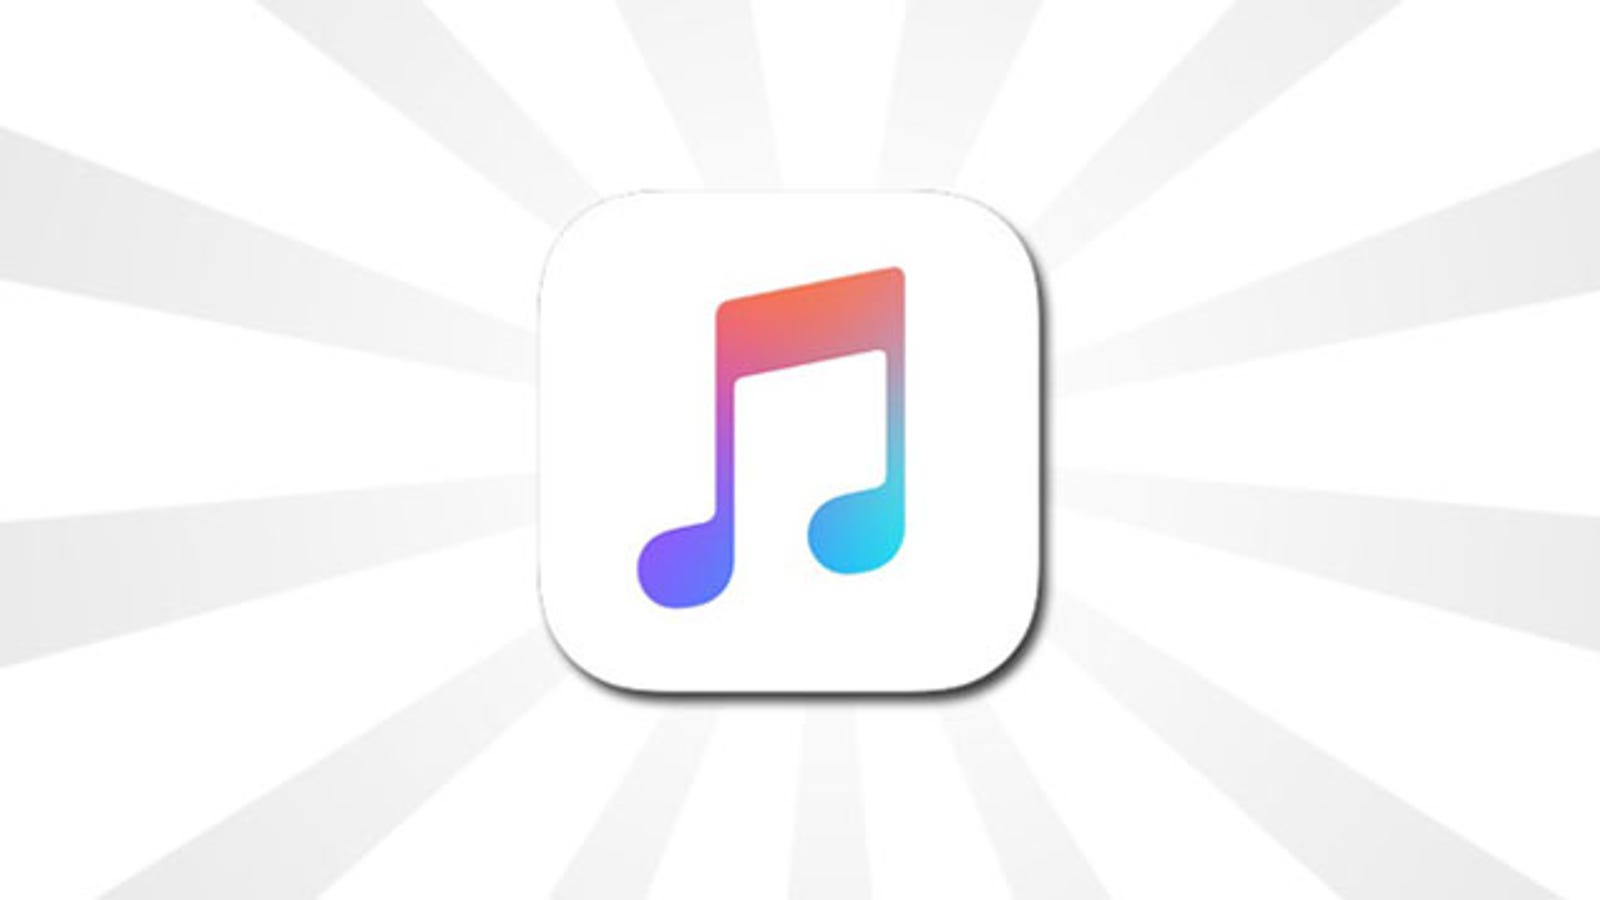 How to Make Sense of the Confusing New Apple Music App